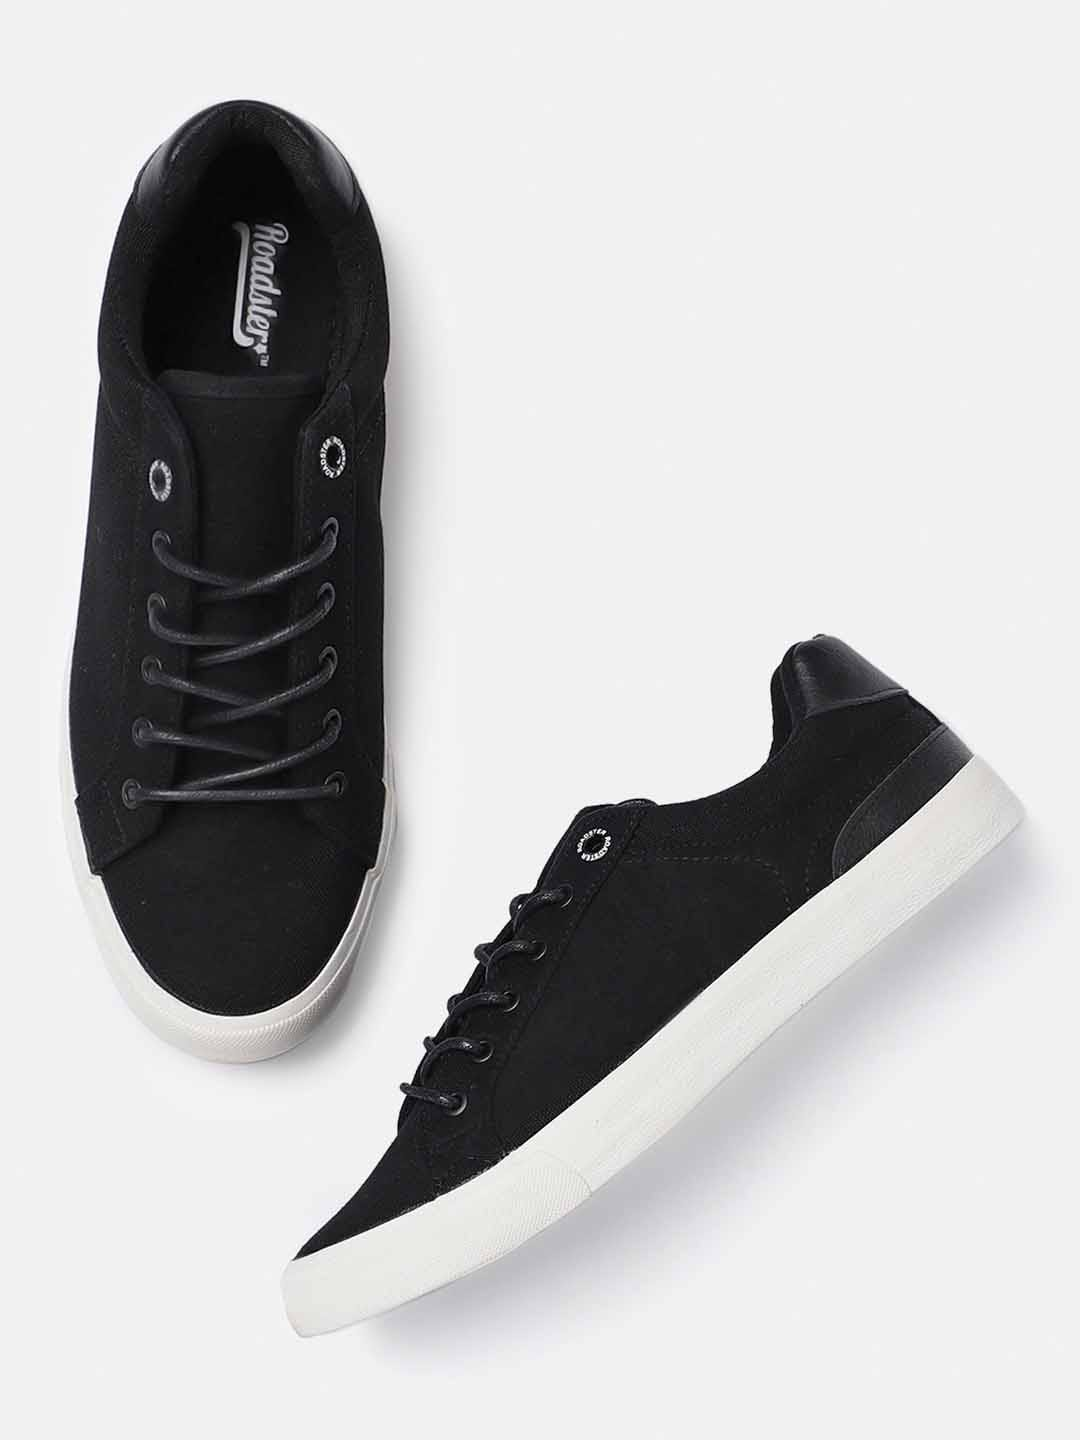 f1ccbbfb3c Casual Shoes For Men   Women - Buy Casual Shoes For Men   Women online in  India